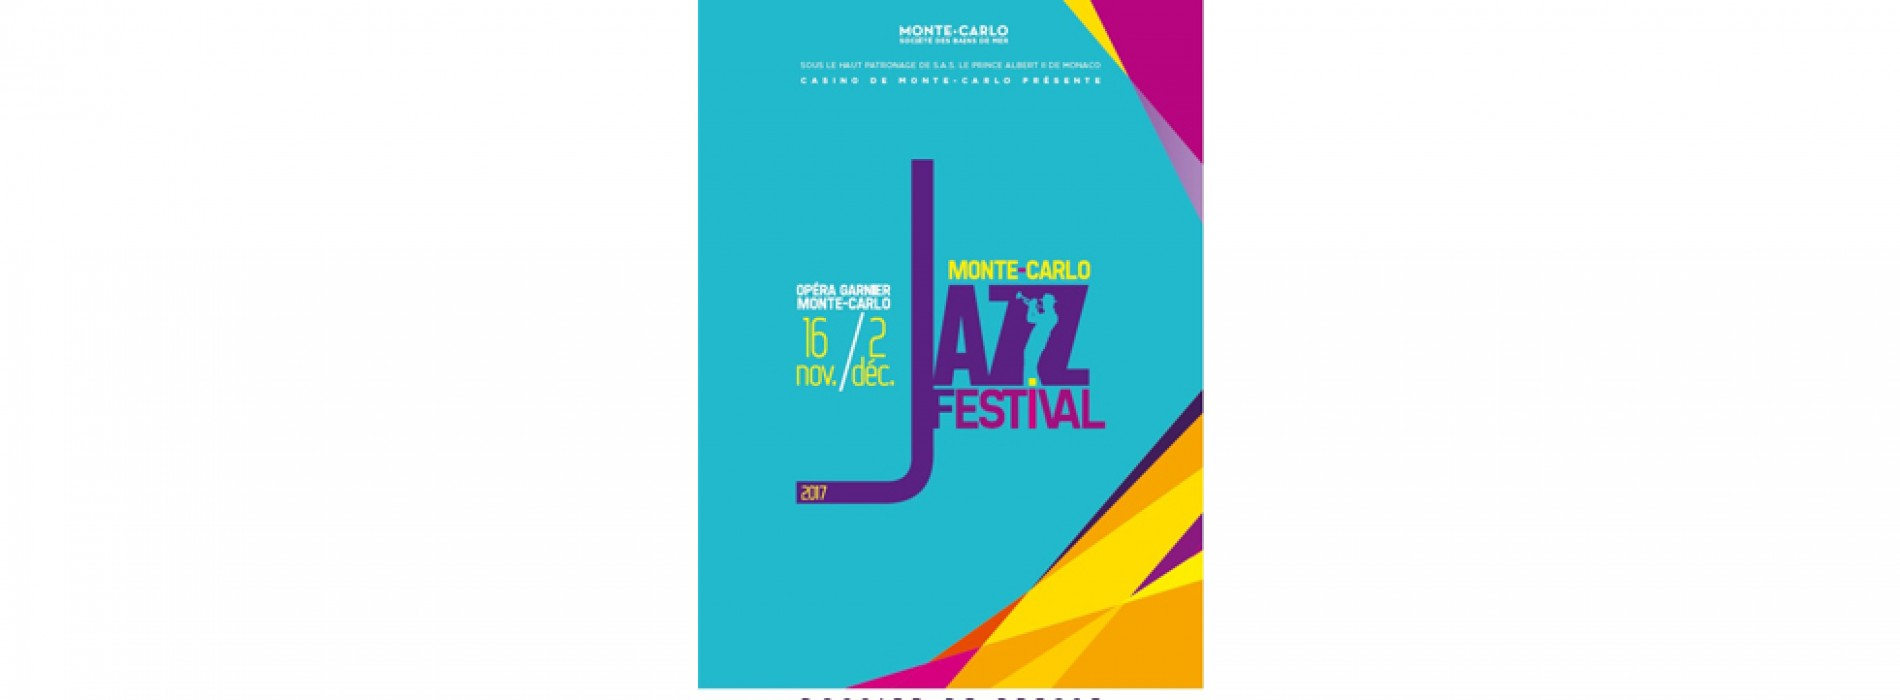 Monaco to host 12th Monte-Carlo Jazz Festival